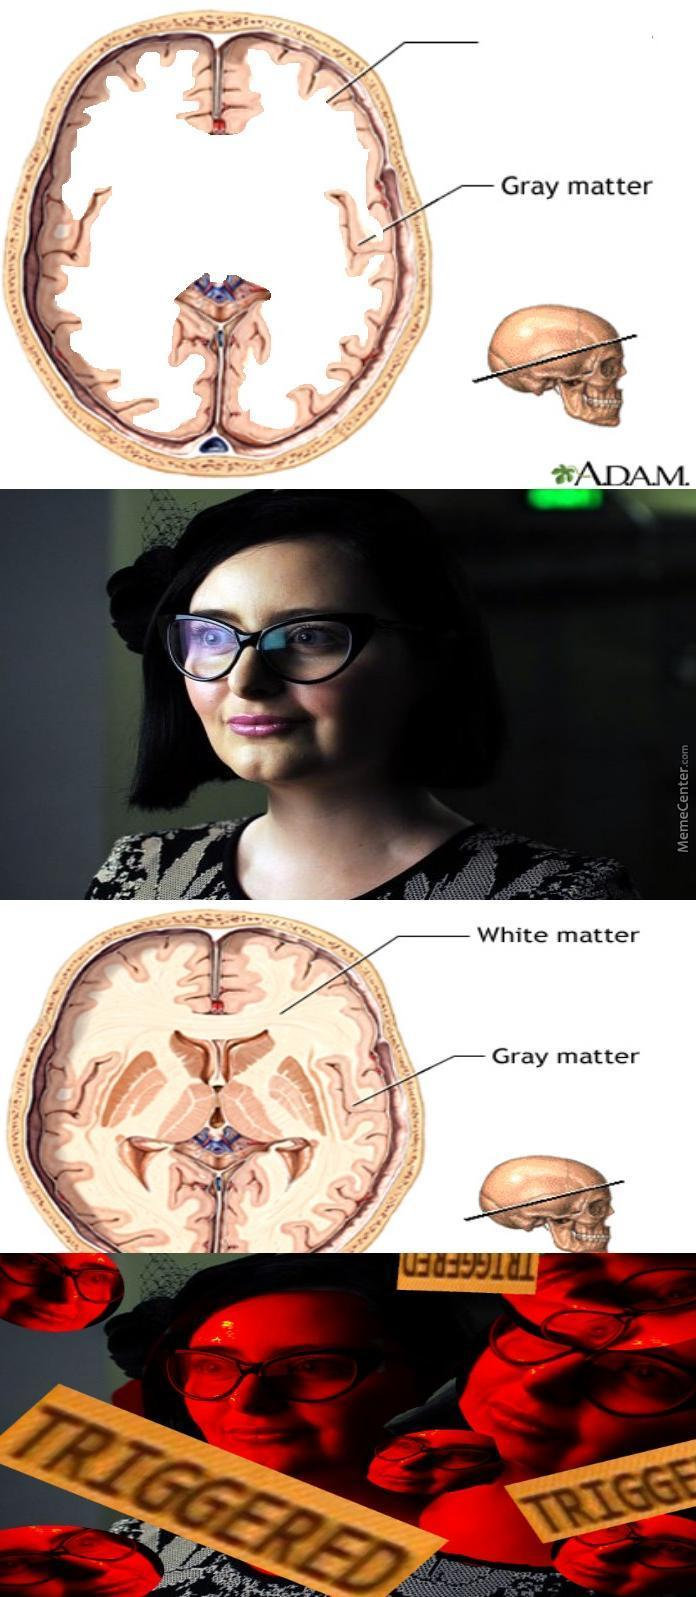 Only Triggered Because She Has No Brain Matter